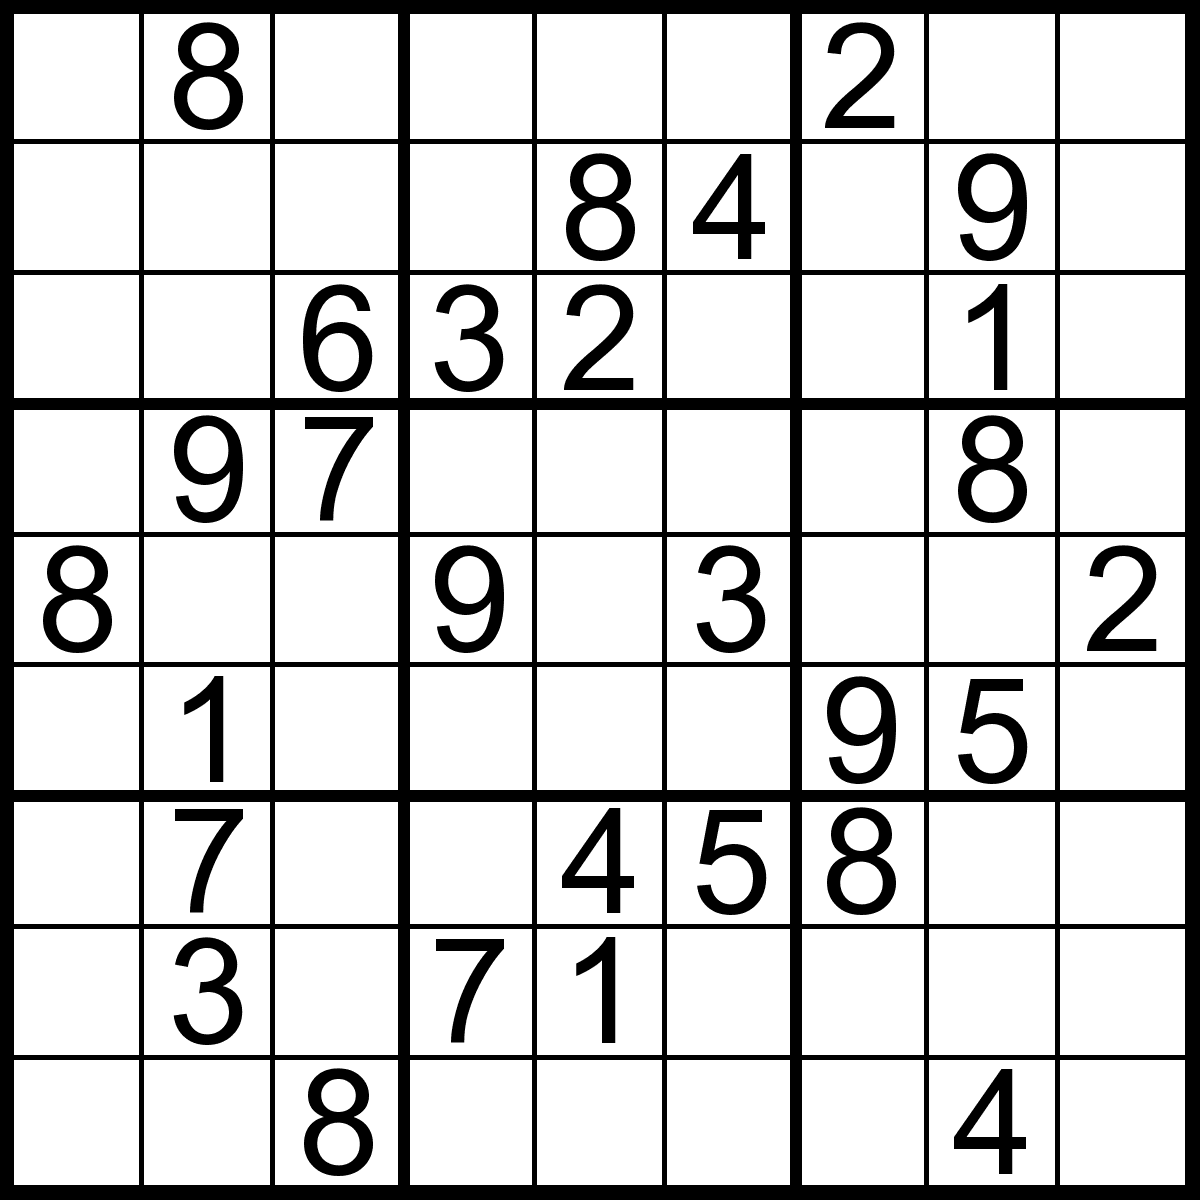 5 best images of very easy sudoku printable 6x6 easy 6x6